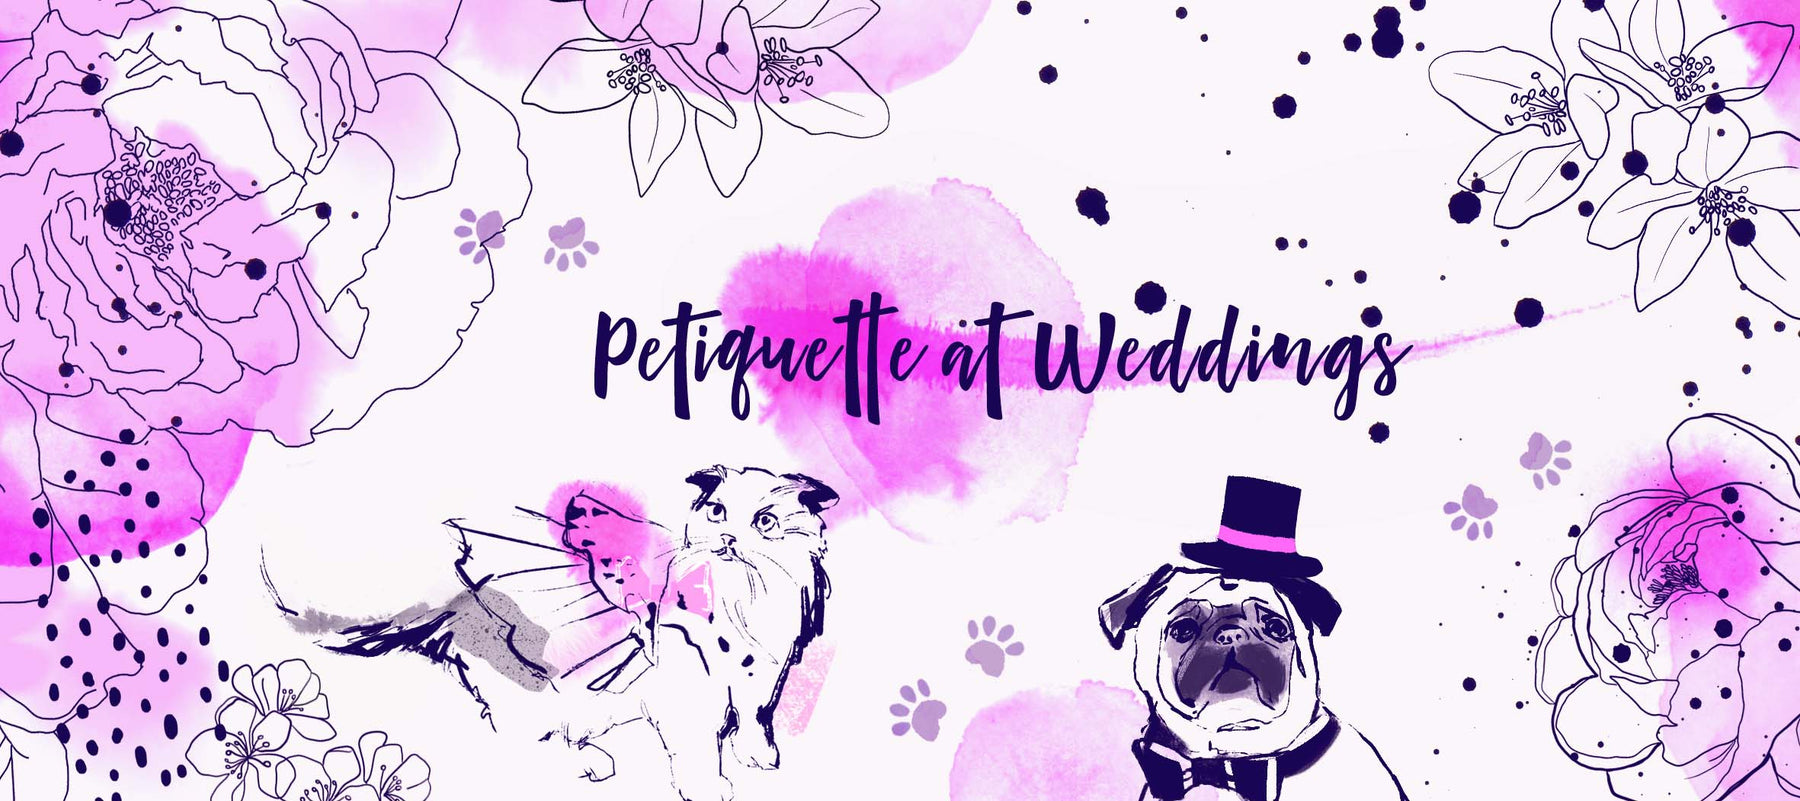 How to Include Pets at your Wedding